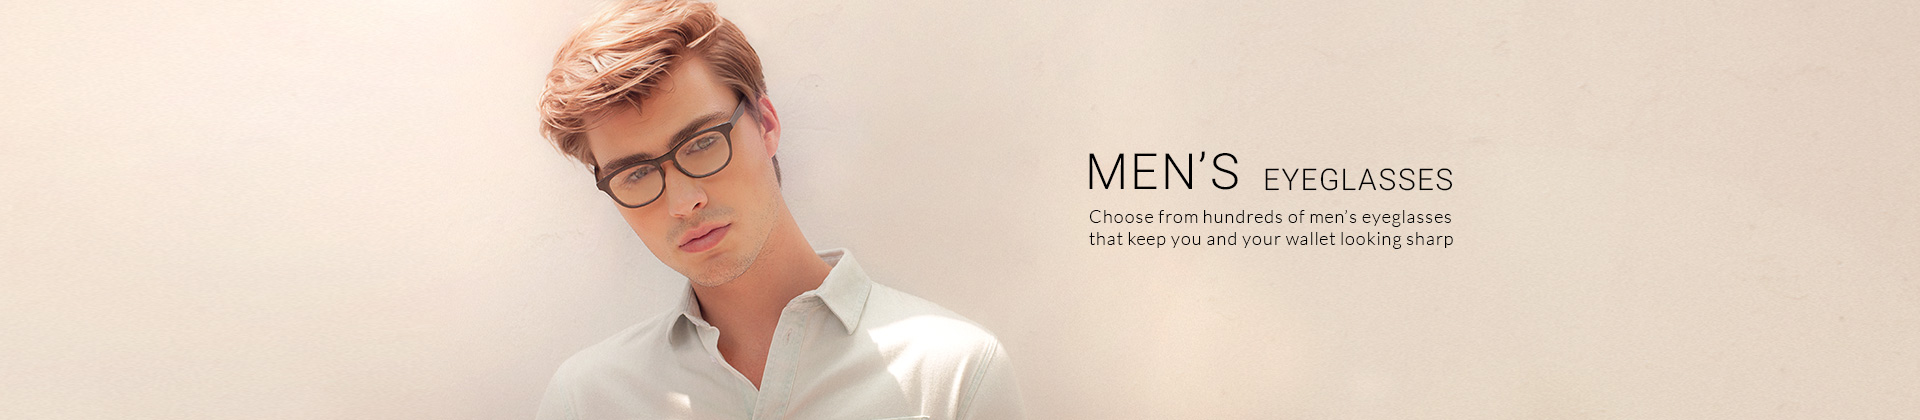 Choose from hundreds of men's eyeglasses that keep you and your wallet looking sharp